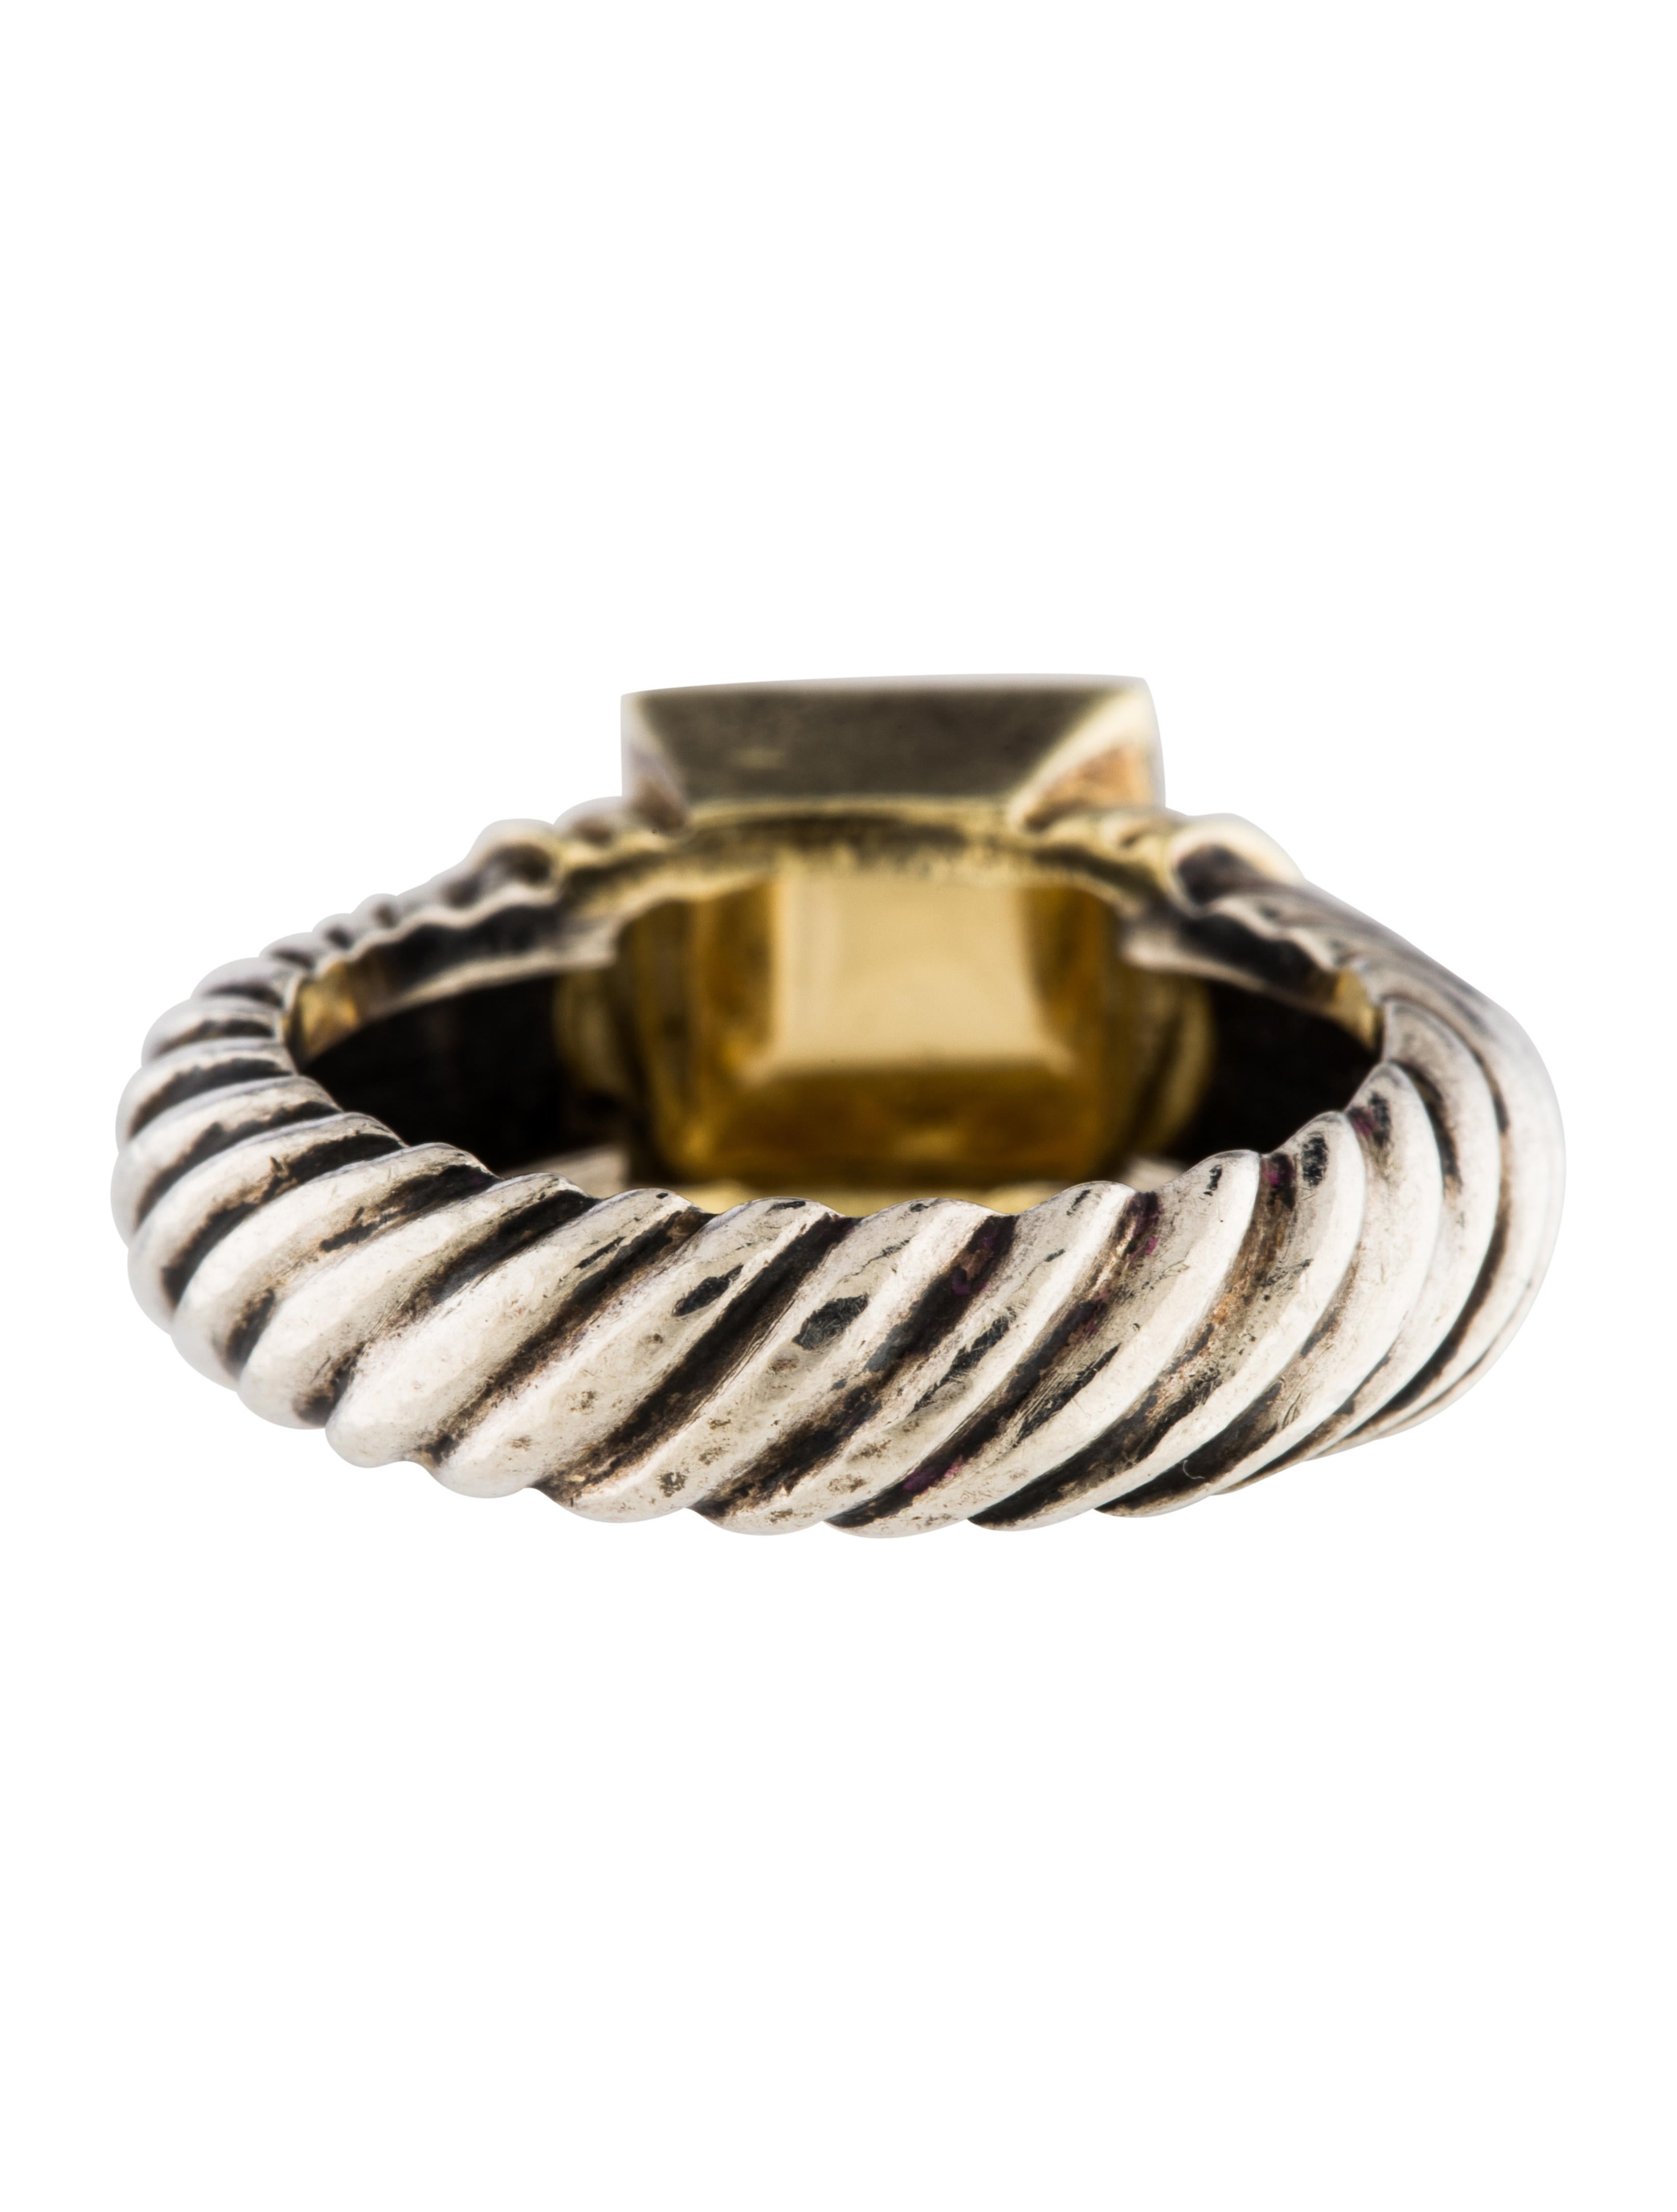 david yurman citrine cocktail ring rings dvy43791